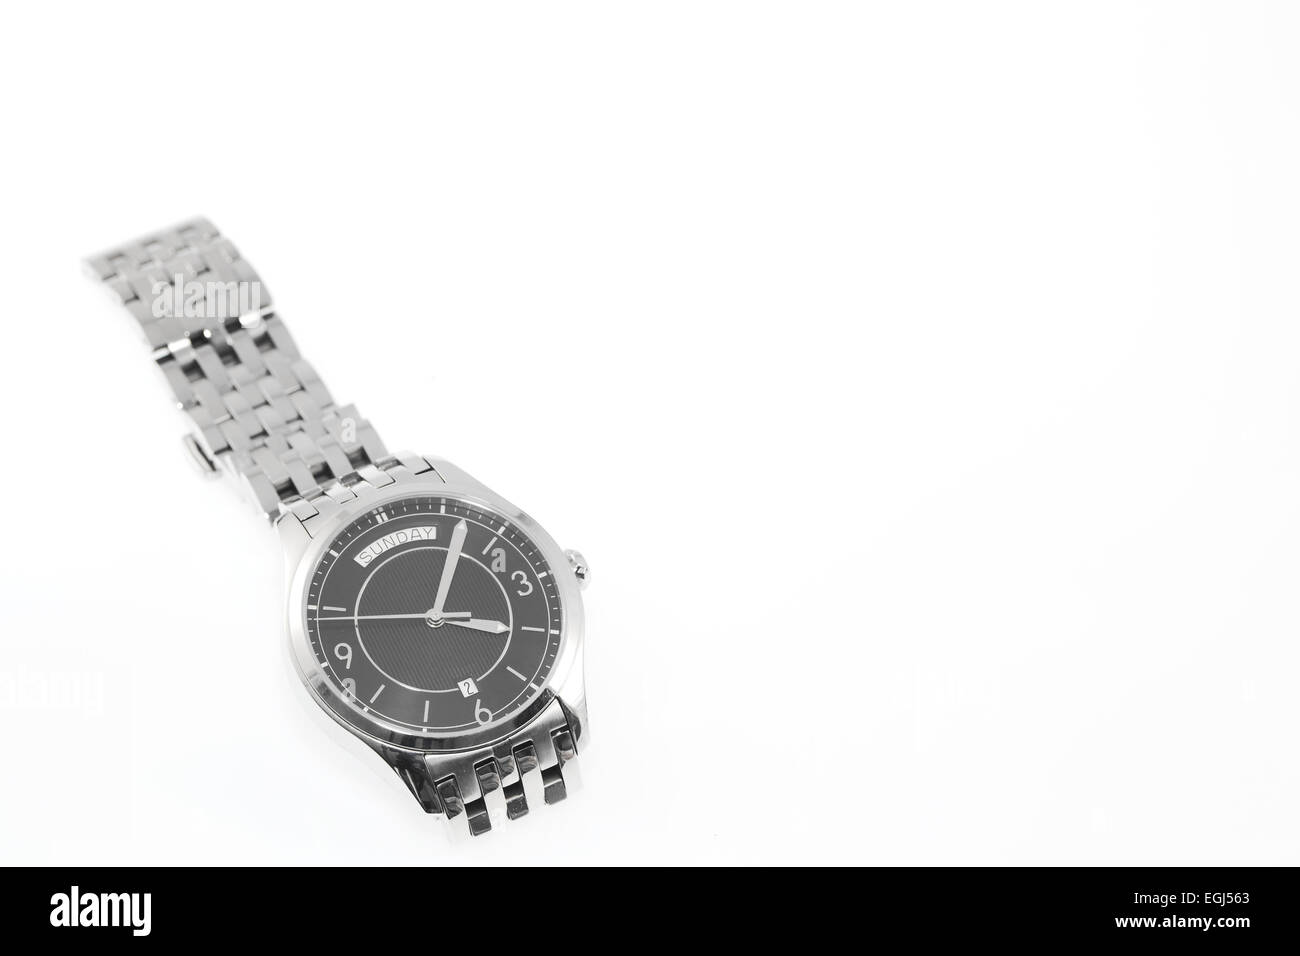 Automatic watch - Stock Image